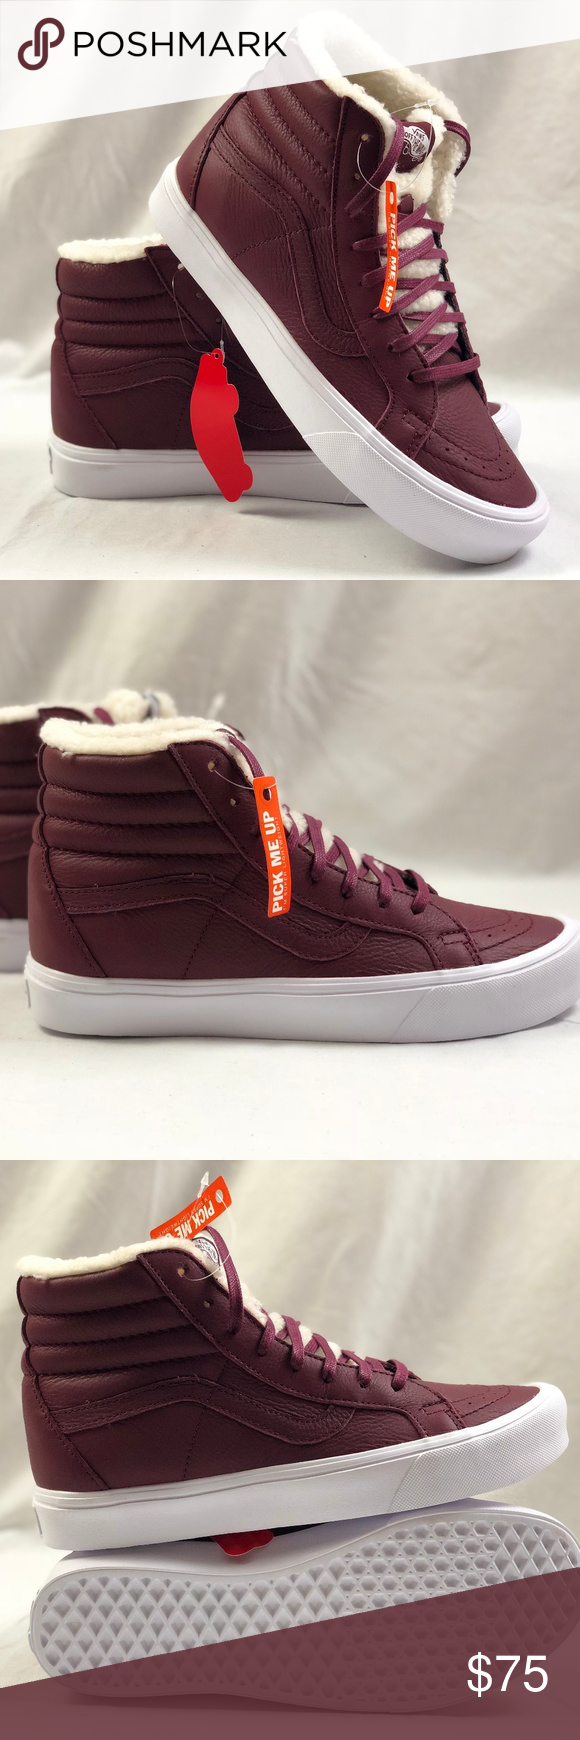 c68872dde5 Vans SK8 Hi Reissue Li Sherpa Burgundy True White Vans SK8 Hi Reissue Li  Sherpa Burgundy True White. Condition  New with box. Size  Women s 9.5